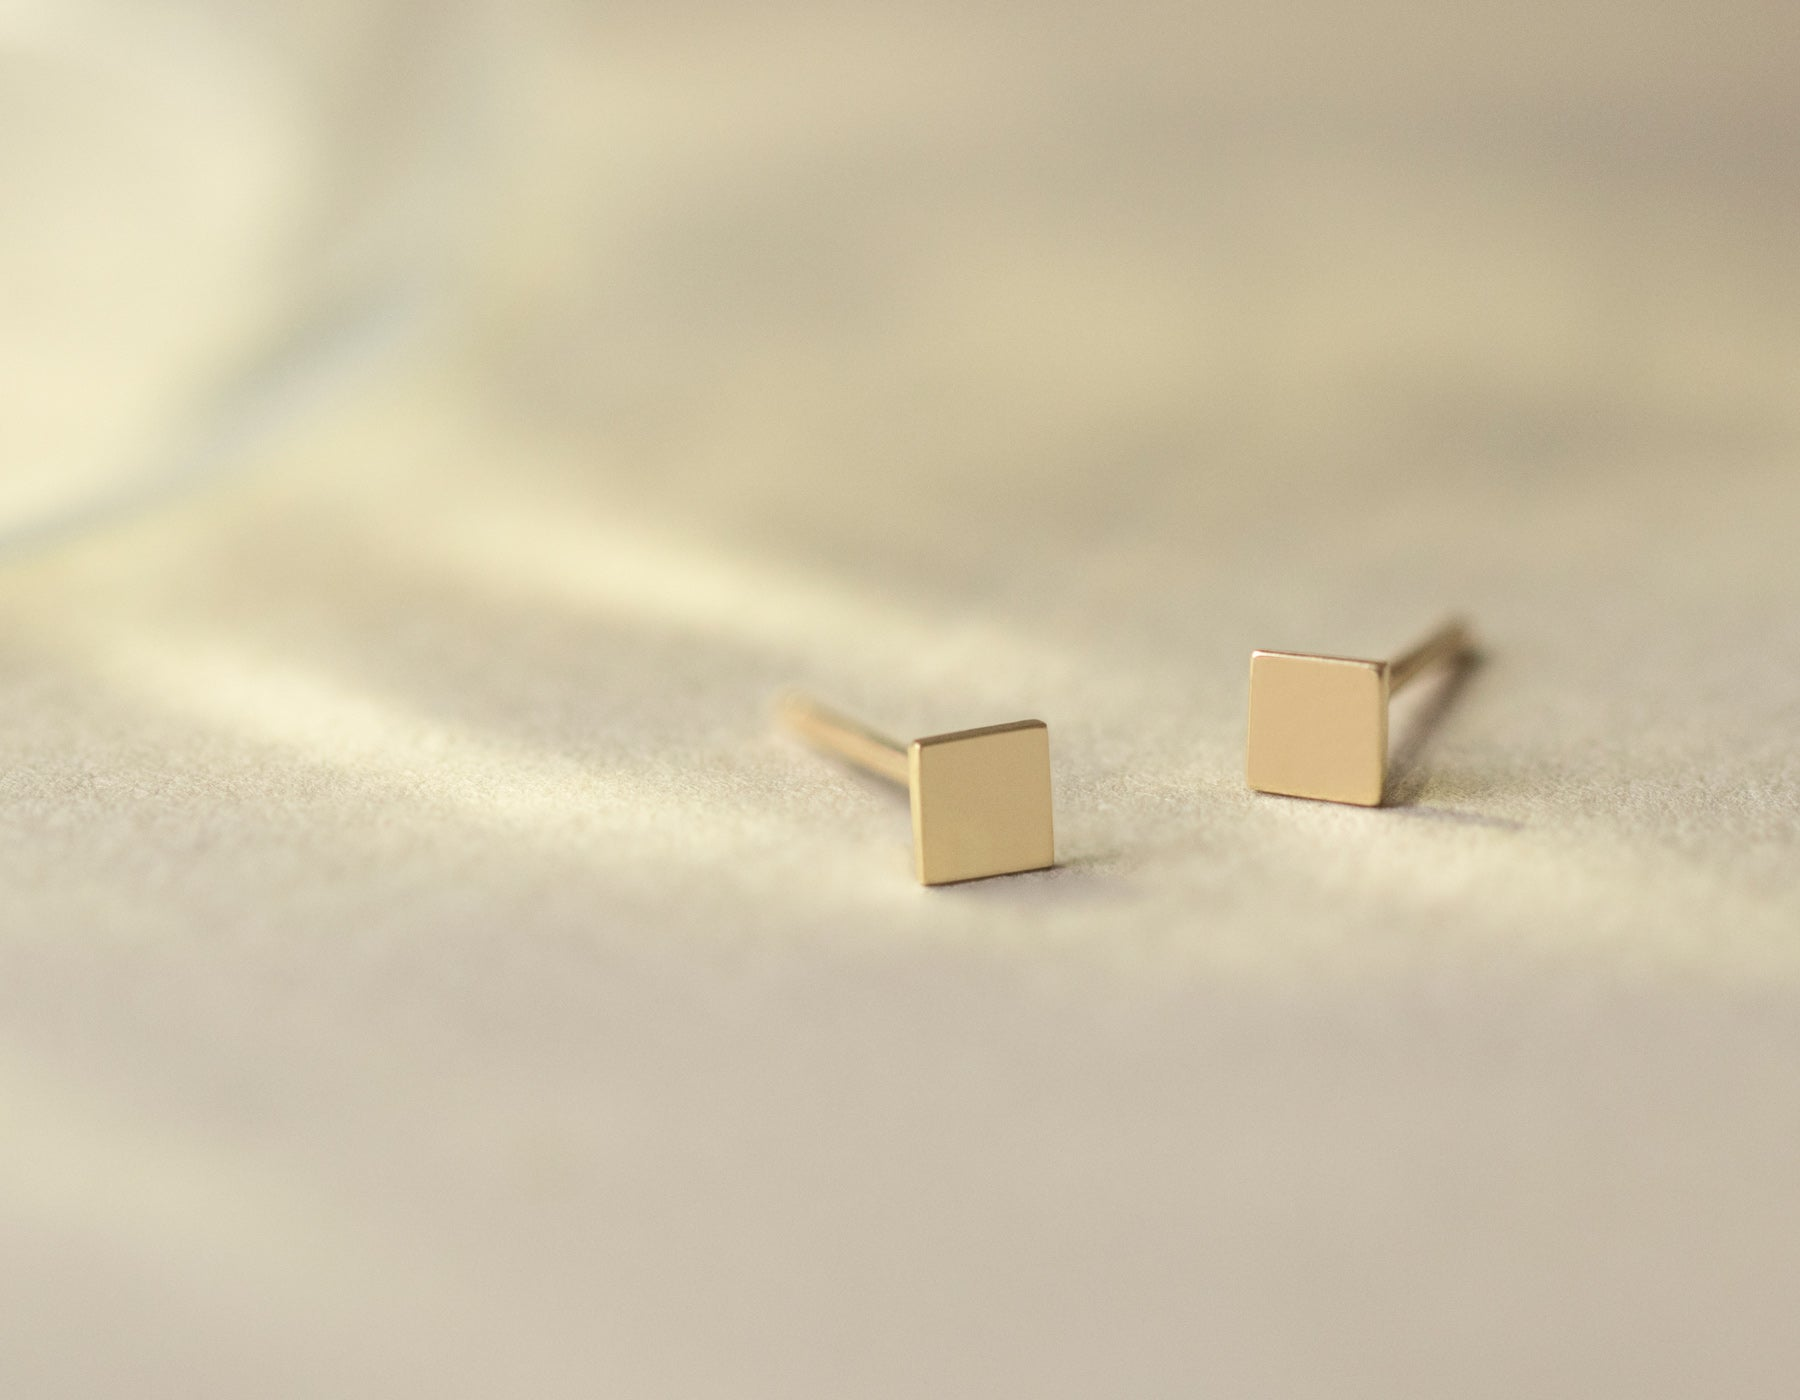 Minimalist Square Stud earrings solid 14k gold Vrai & Oro simple elegant jewelry